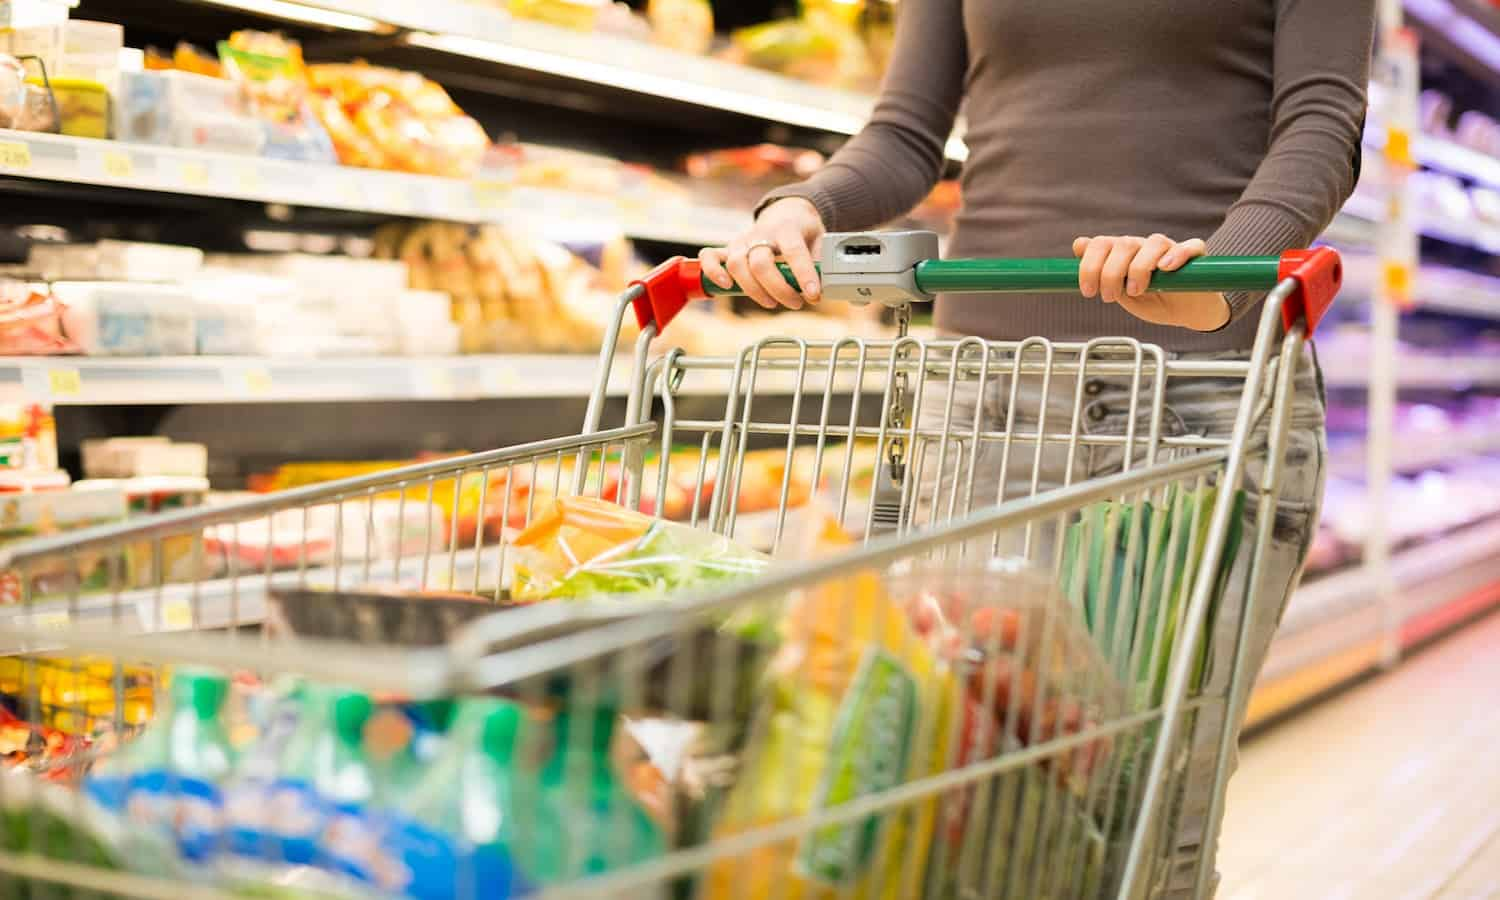 Major UK supermarkets are to publish food waste data after agreeing on a new, common methodology for reporting.